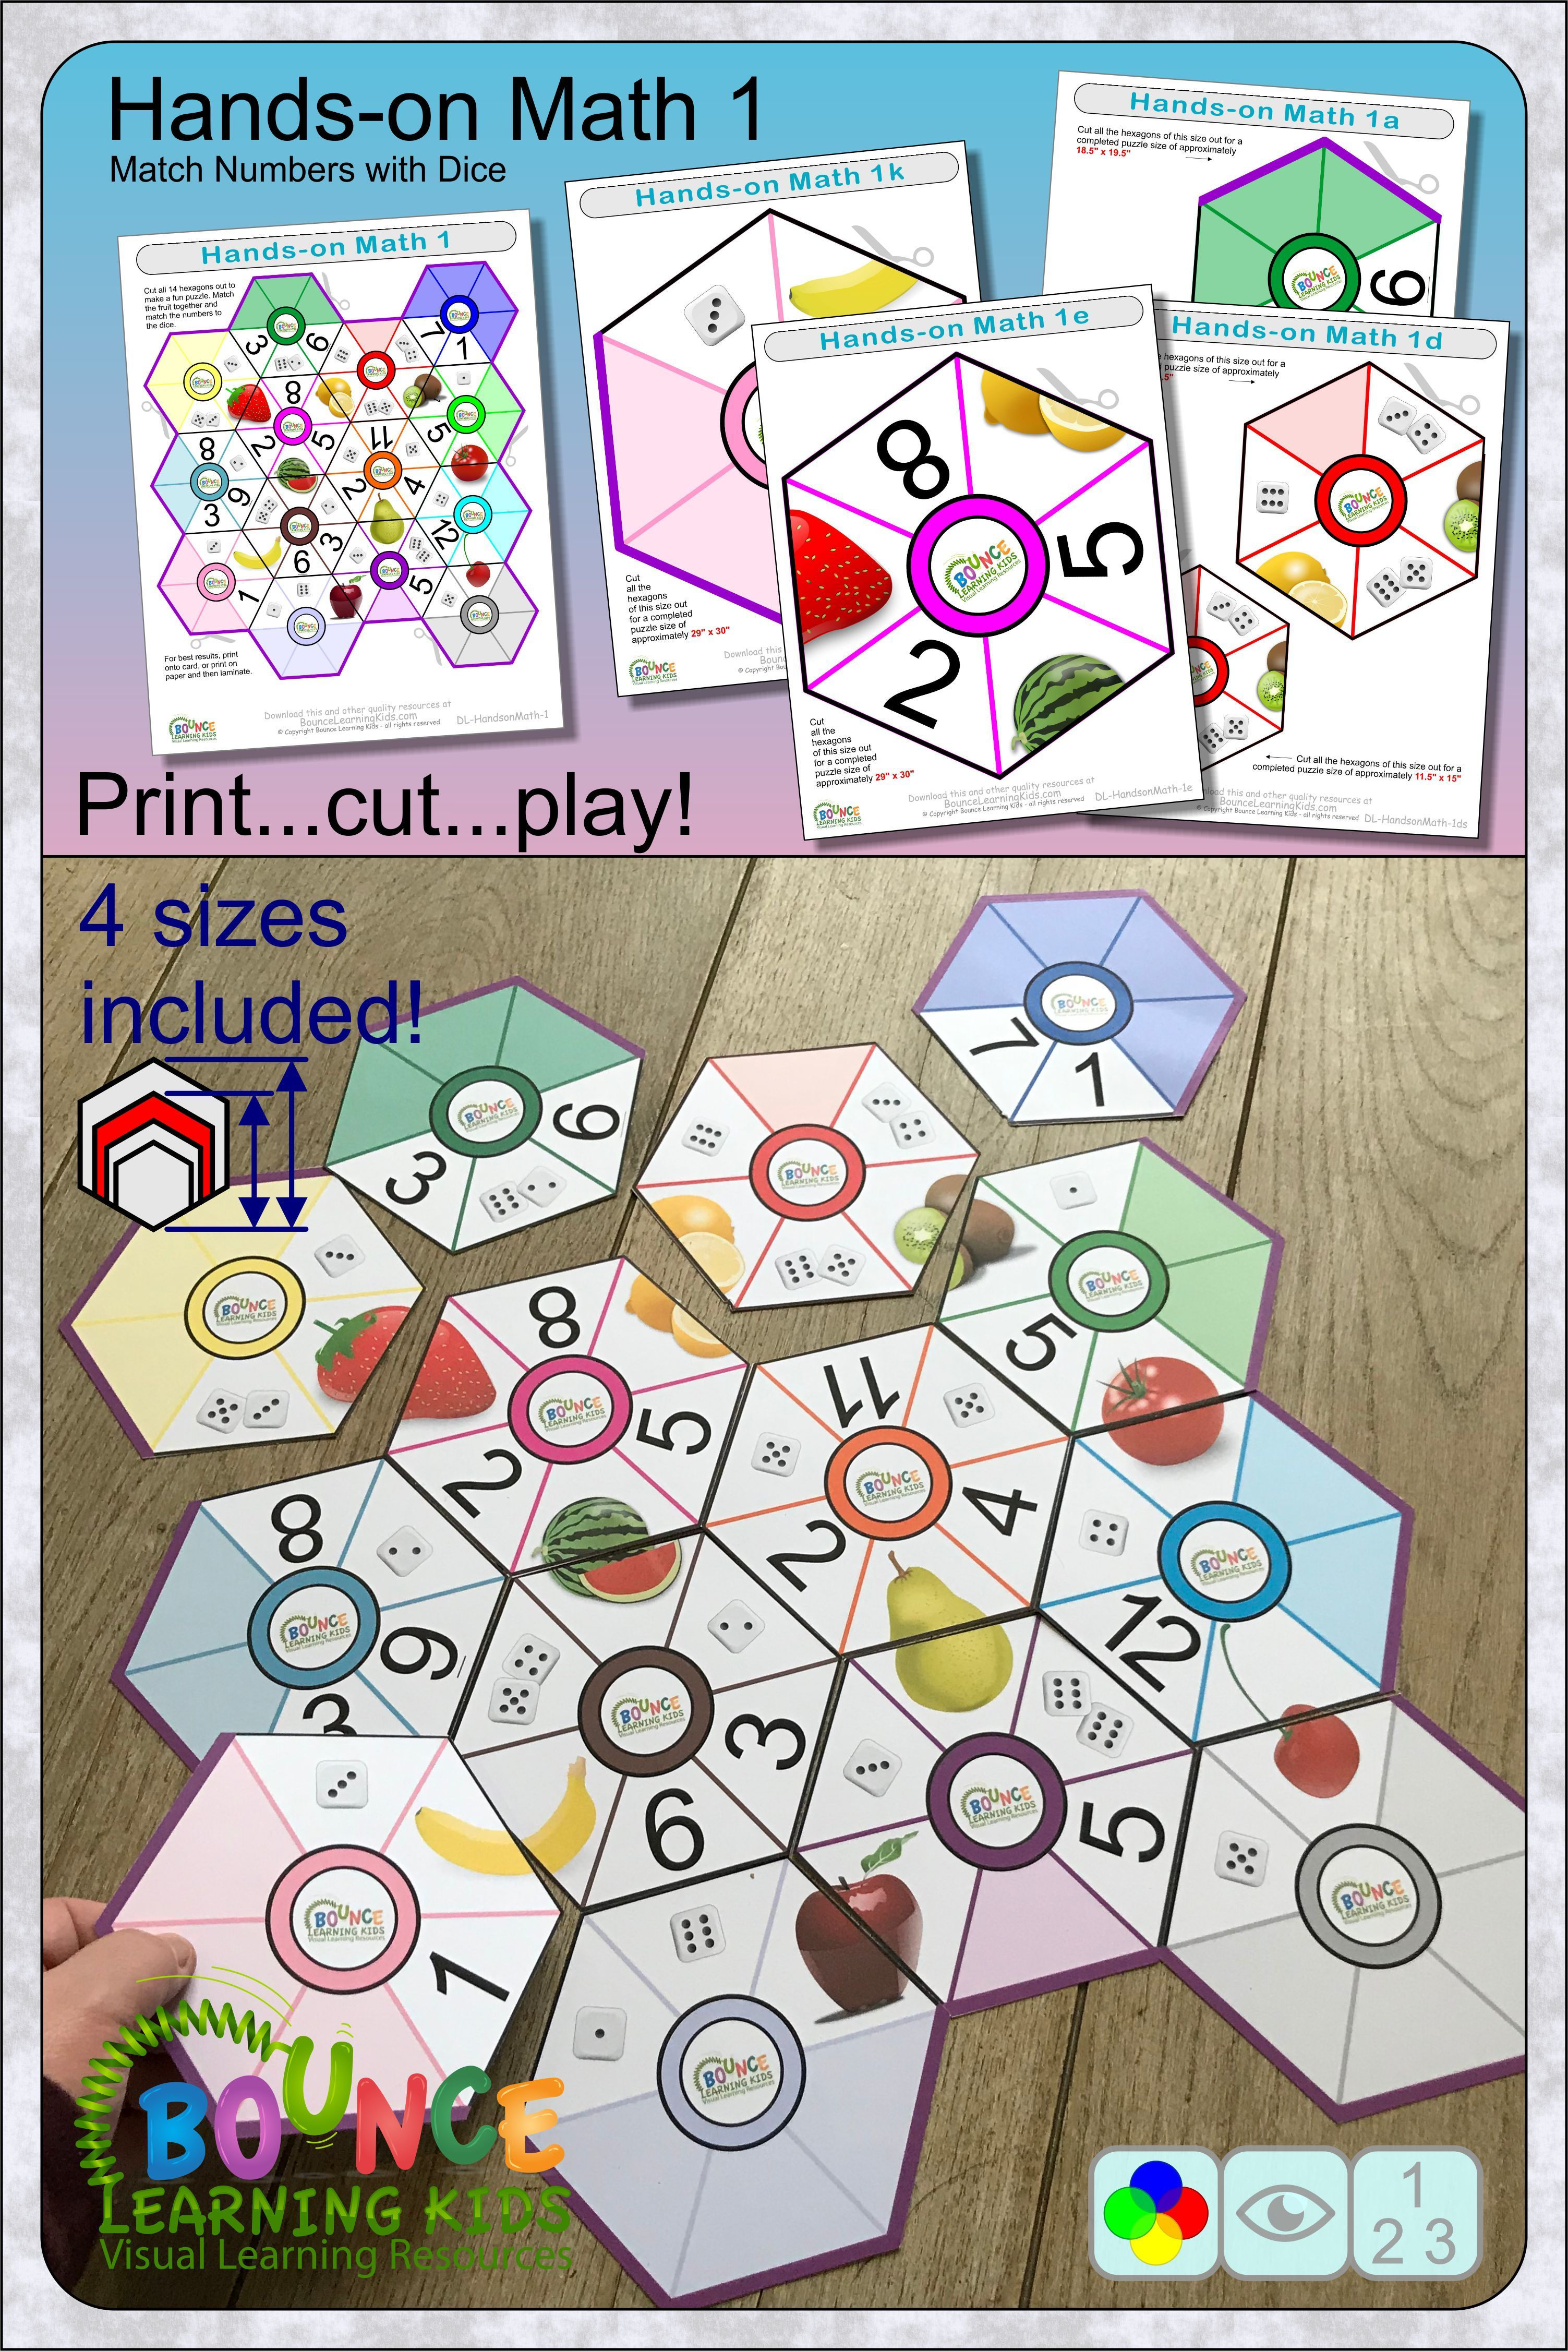 Hands On Math 1 29 Numeracy And Visual Perception Sheets